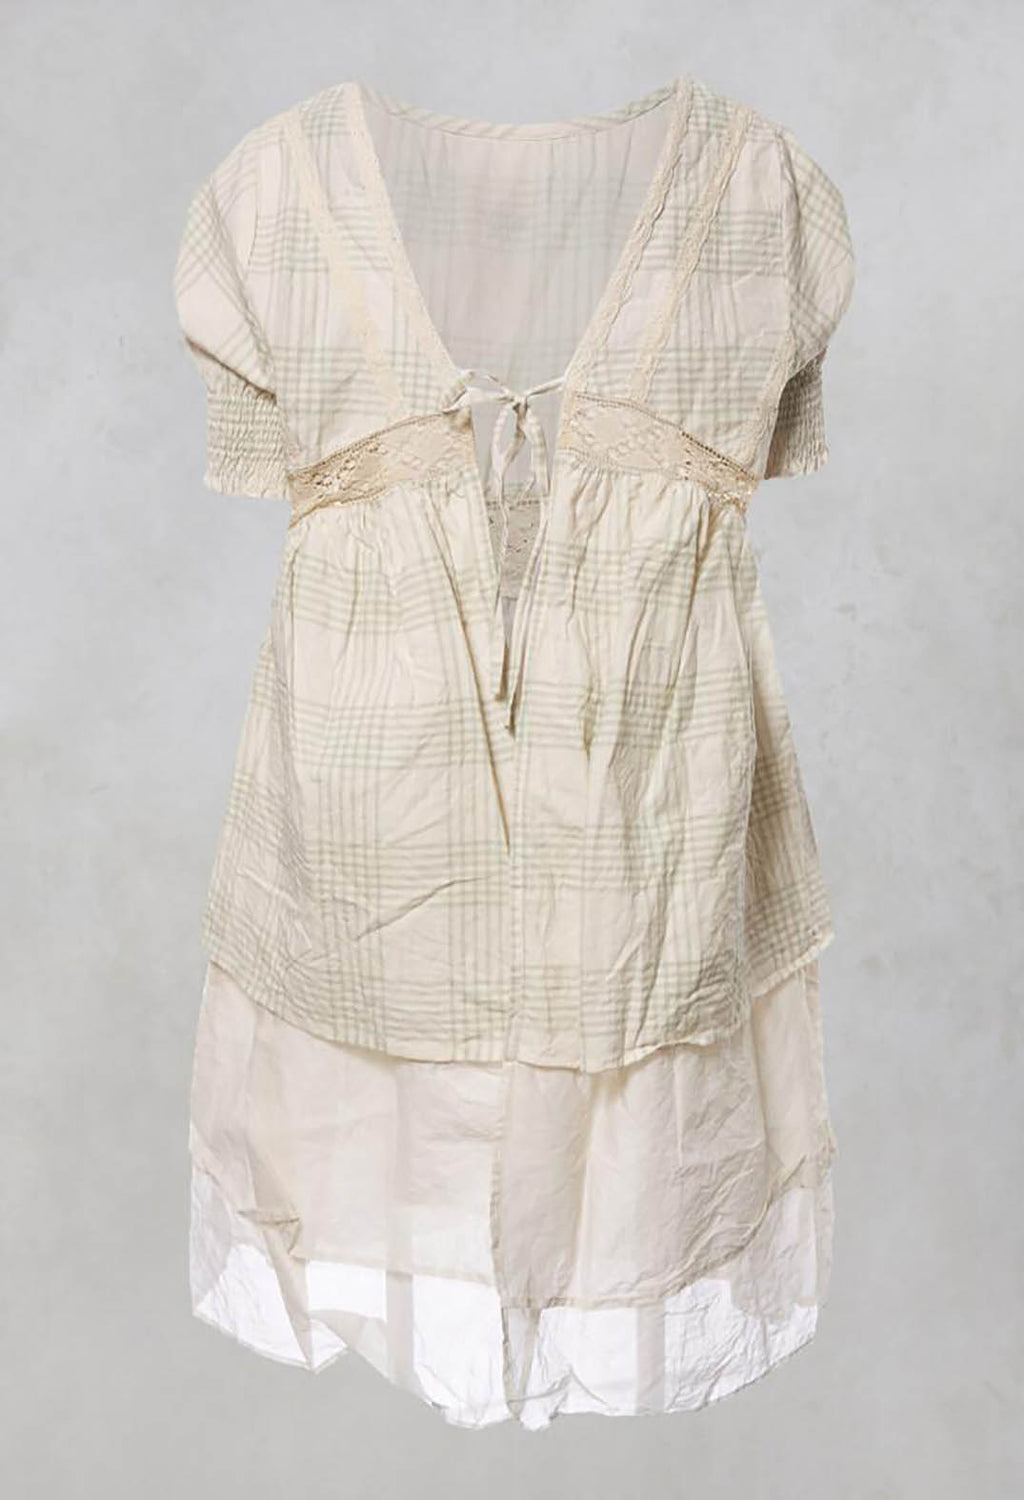 Anja Smock Top with Lace Detailing and Tie Back in Coton Carreaux Vert Eau